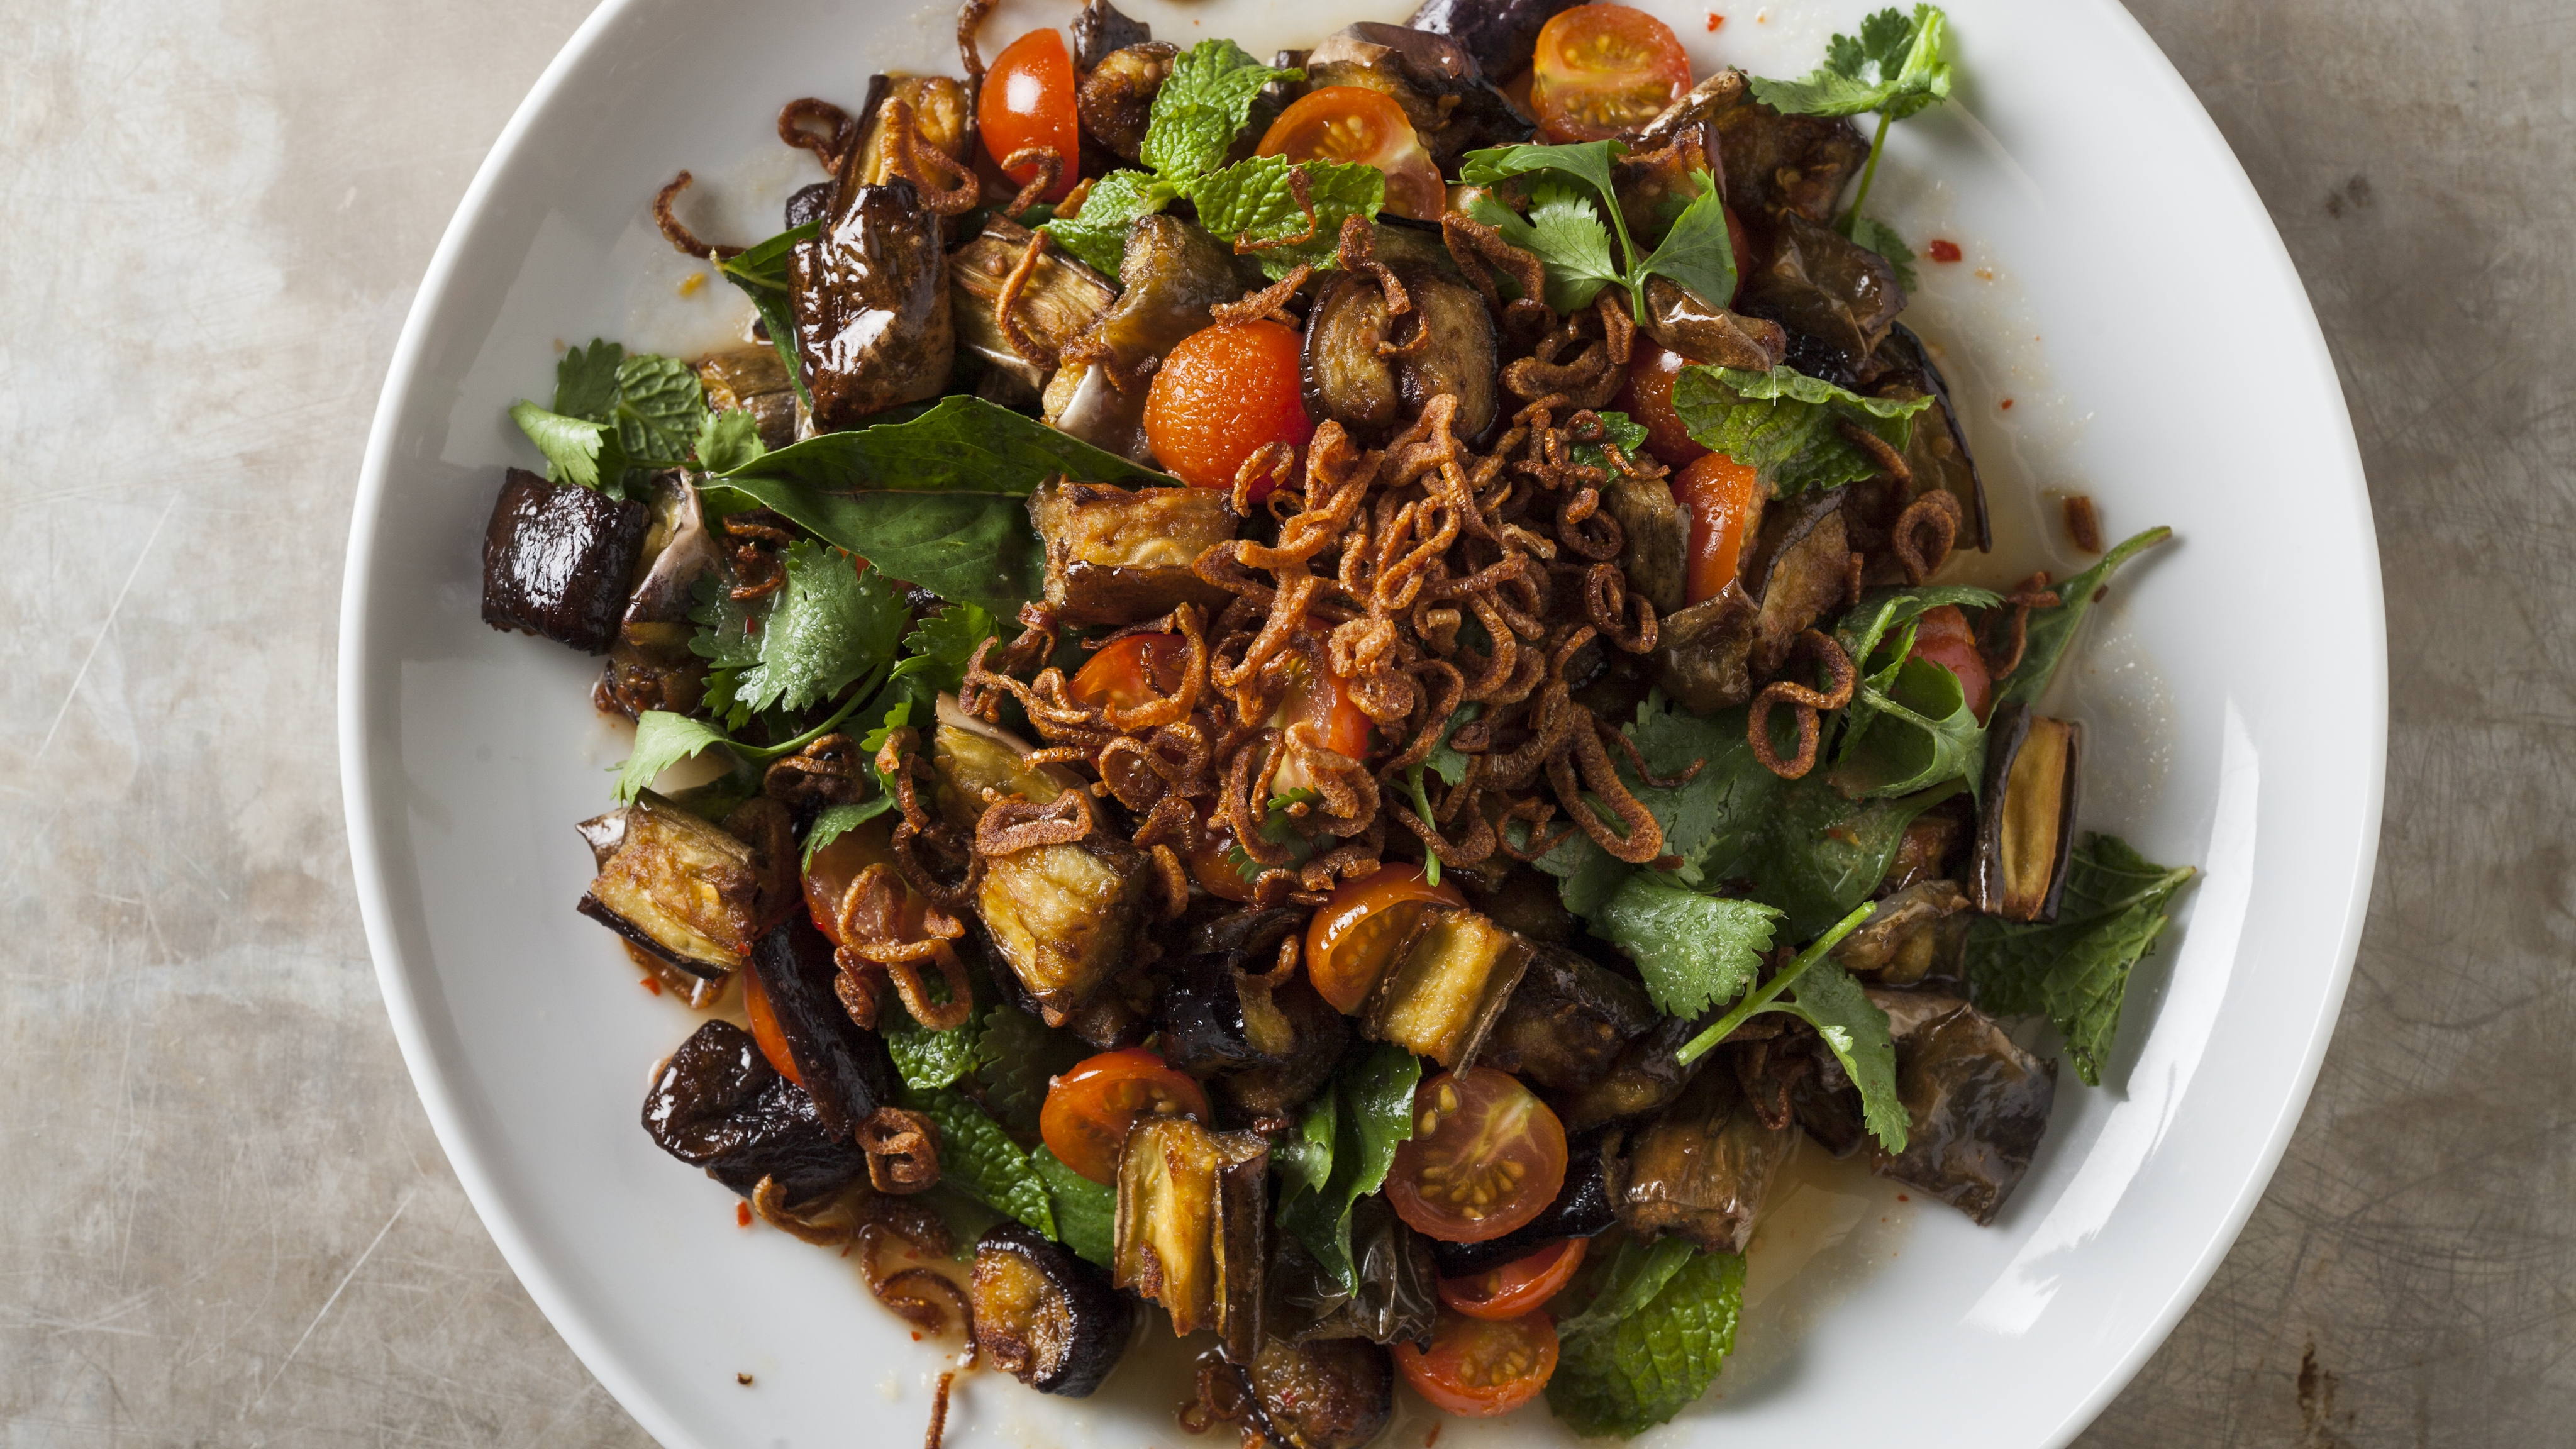 Join the test kitchen for Crispy Thai Eggplant Salad